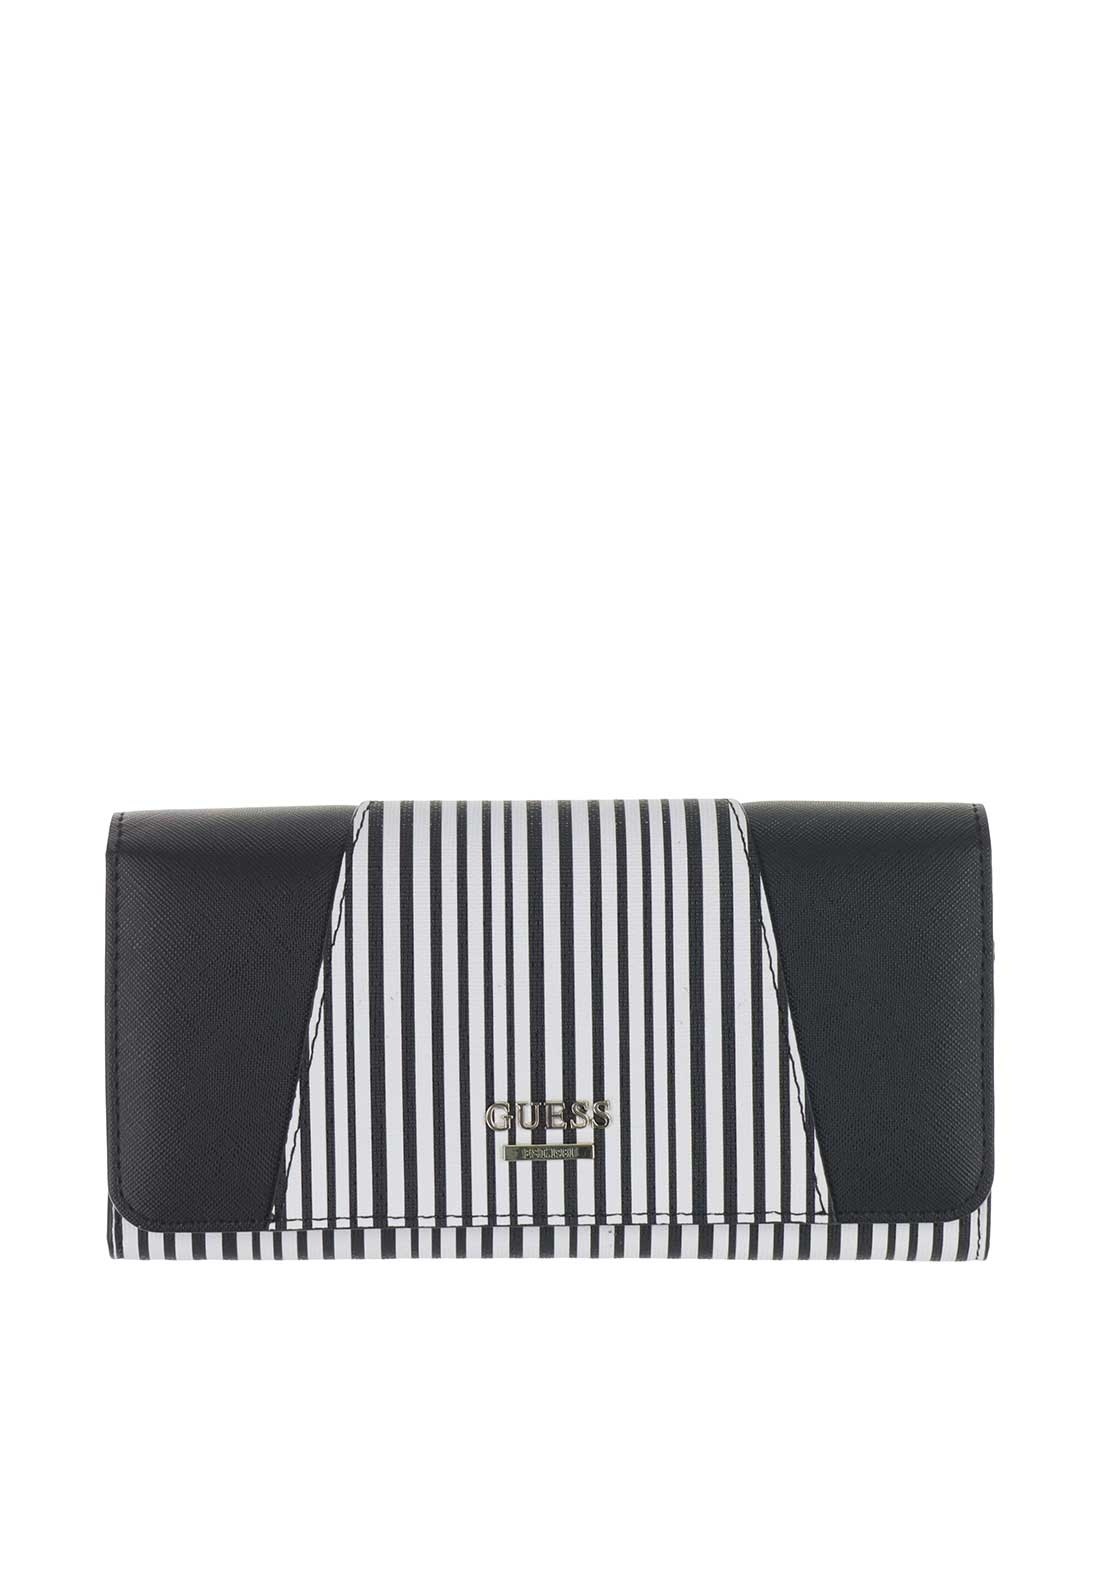 Guess Gia Striped Zip Around Wallet, Black & White